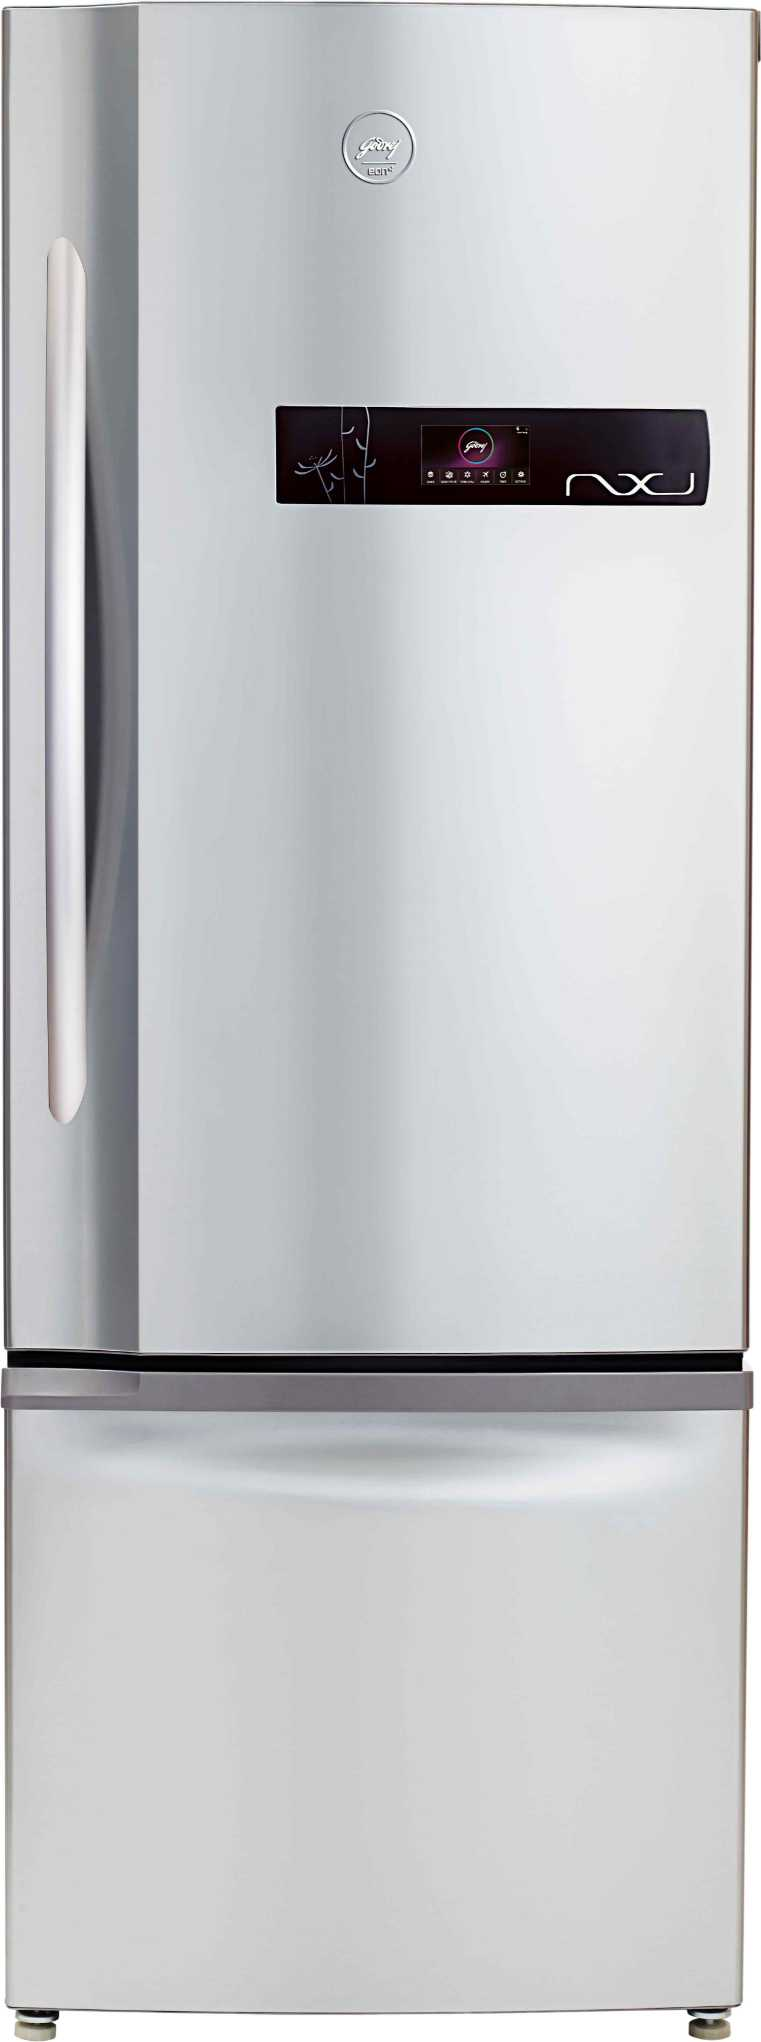 Best price on Godrej RB EON NXW 430 SD 430 Litre Double Door Refrigerator in India